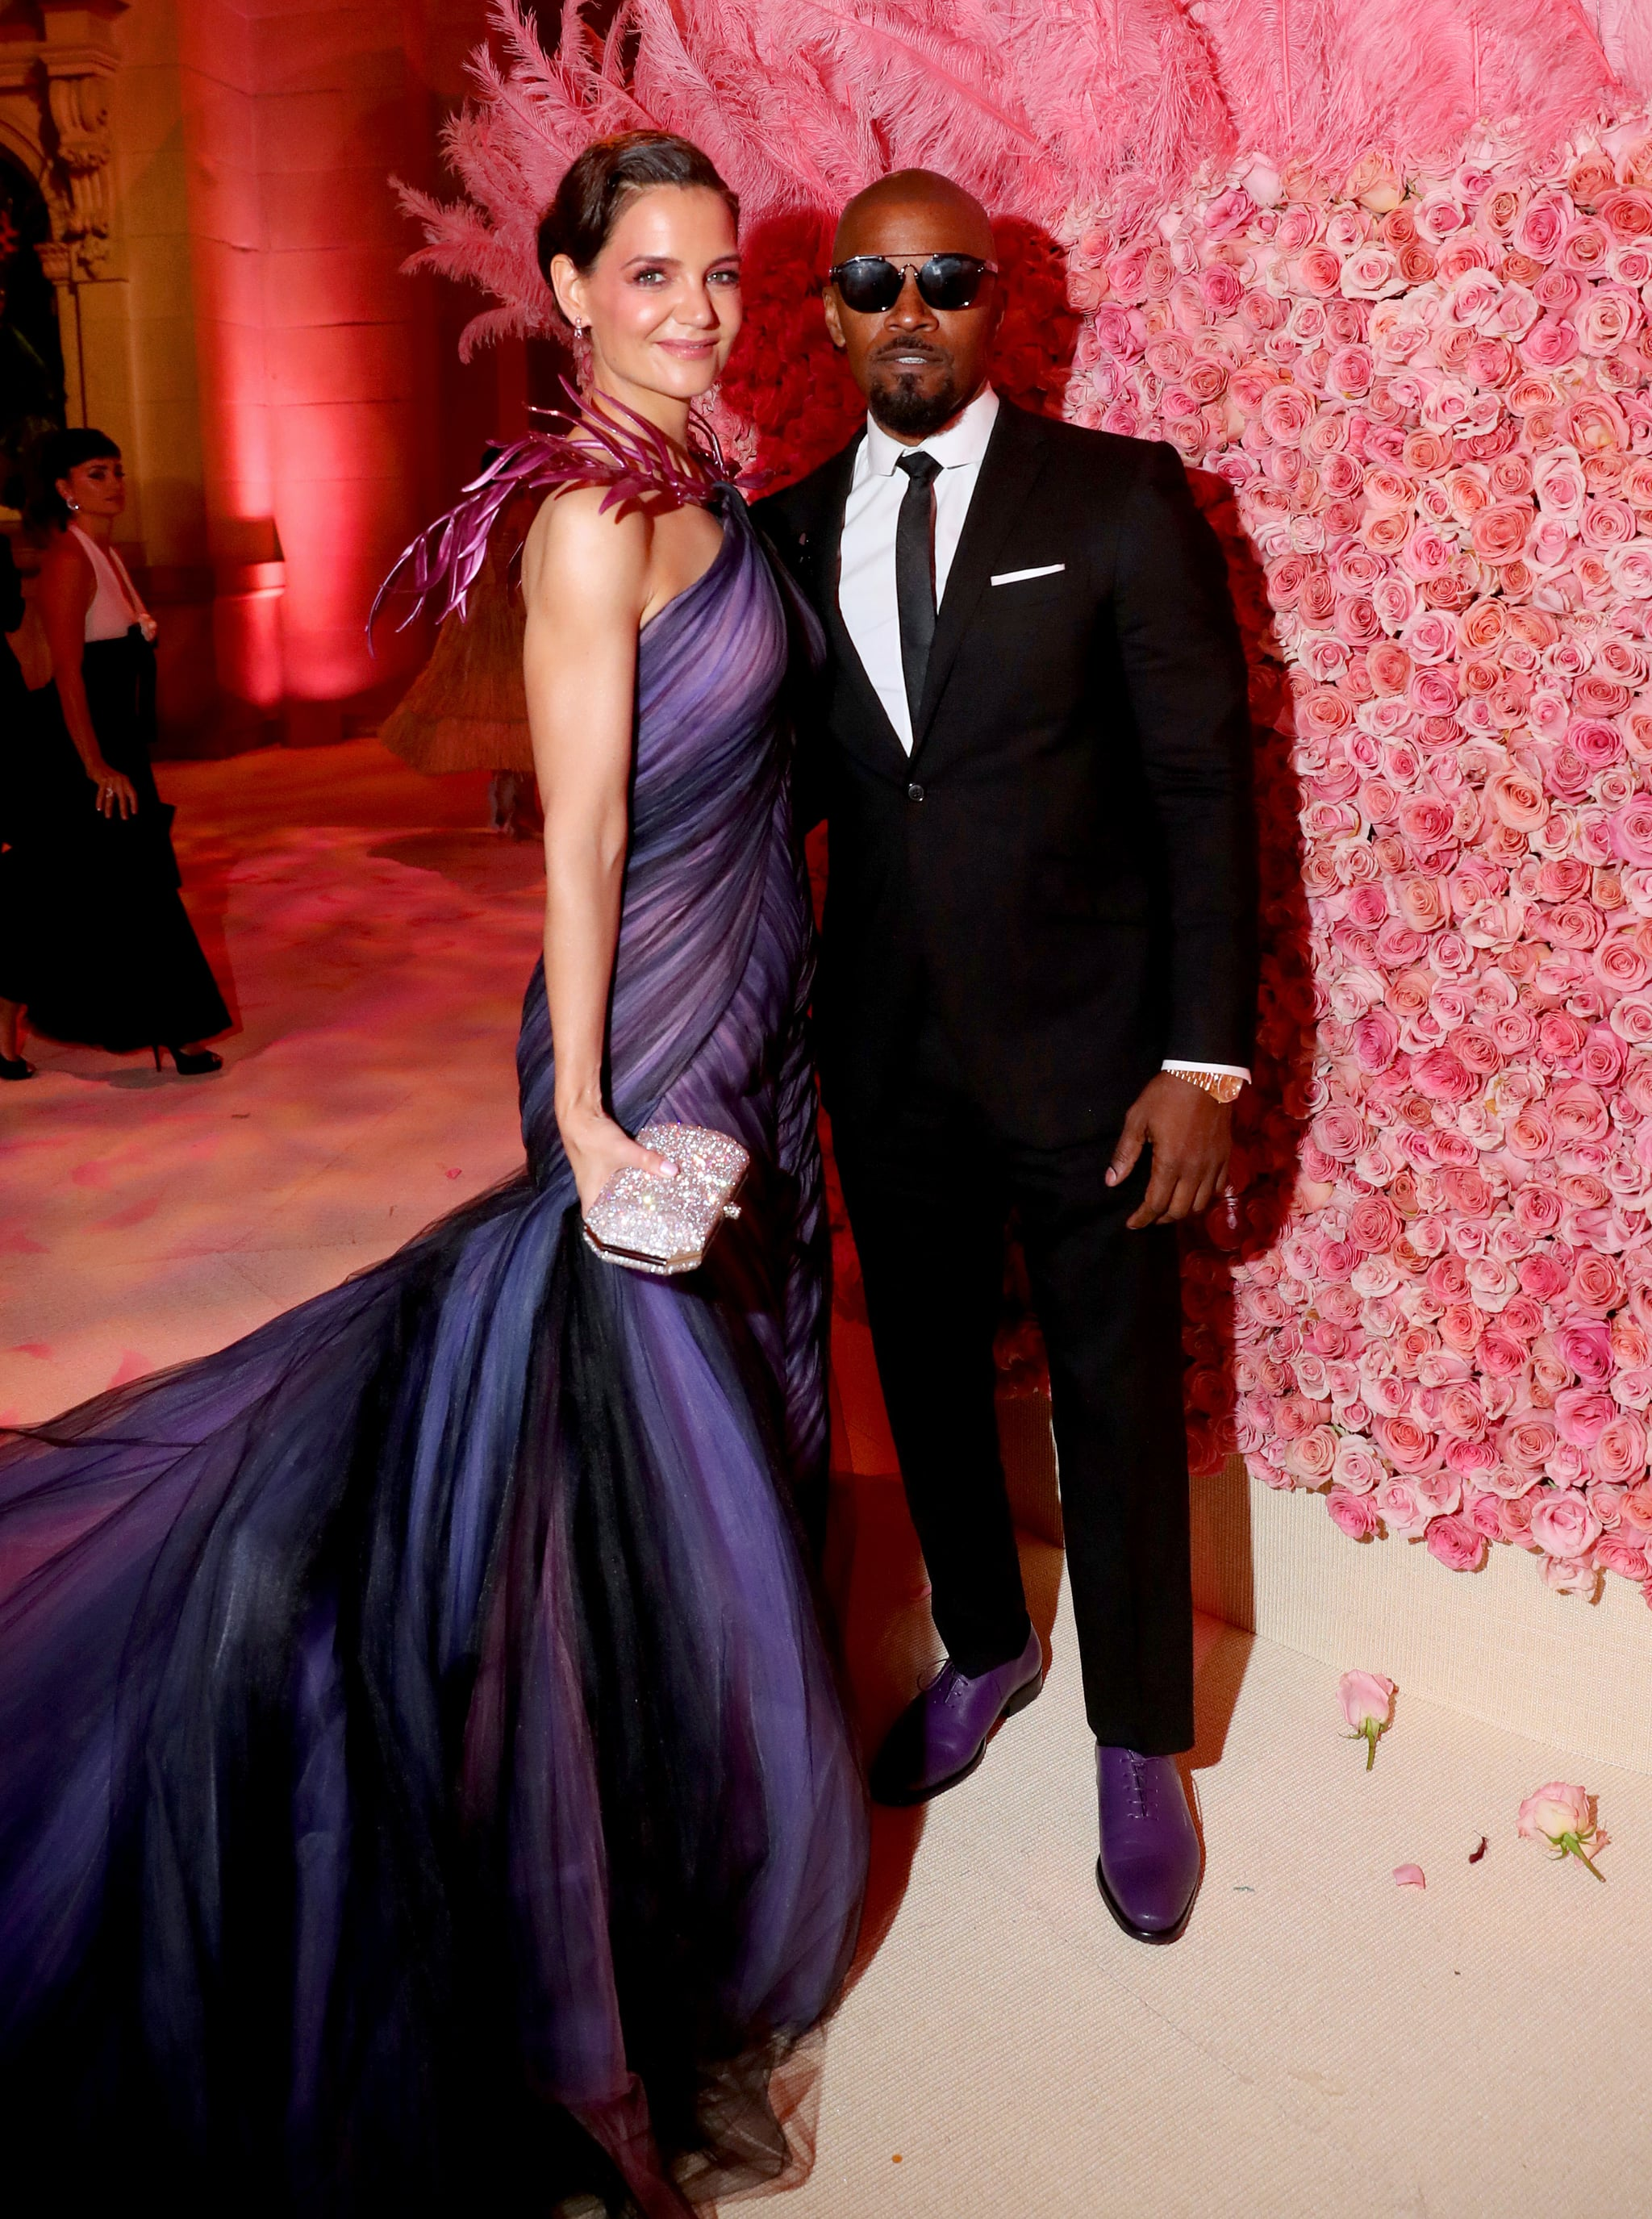 NEW YORK, NEW YORK - MAY 06: Katie Holmes and Jamie Foxx attend The 2019 Met Gala Celebrating Camp: Notes on Fashion at Metropolitan Museum of Art on May 06, 2019 in New York City. (Photo by Kevin Tachman/MG19/Getty Images for The Met Museum/Vogue)